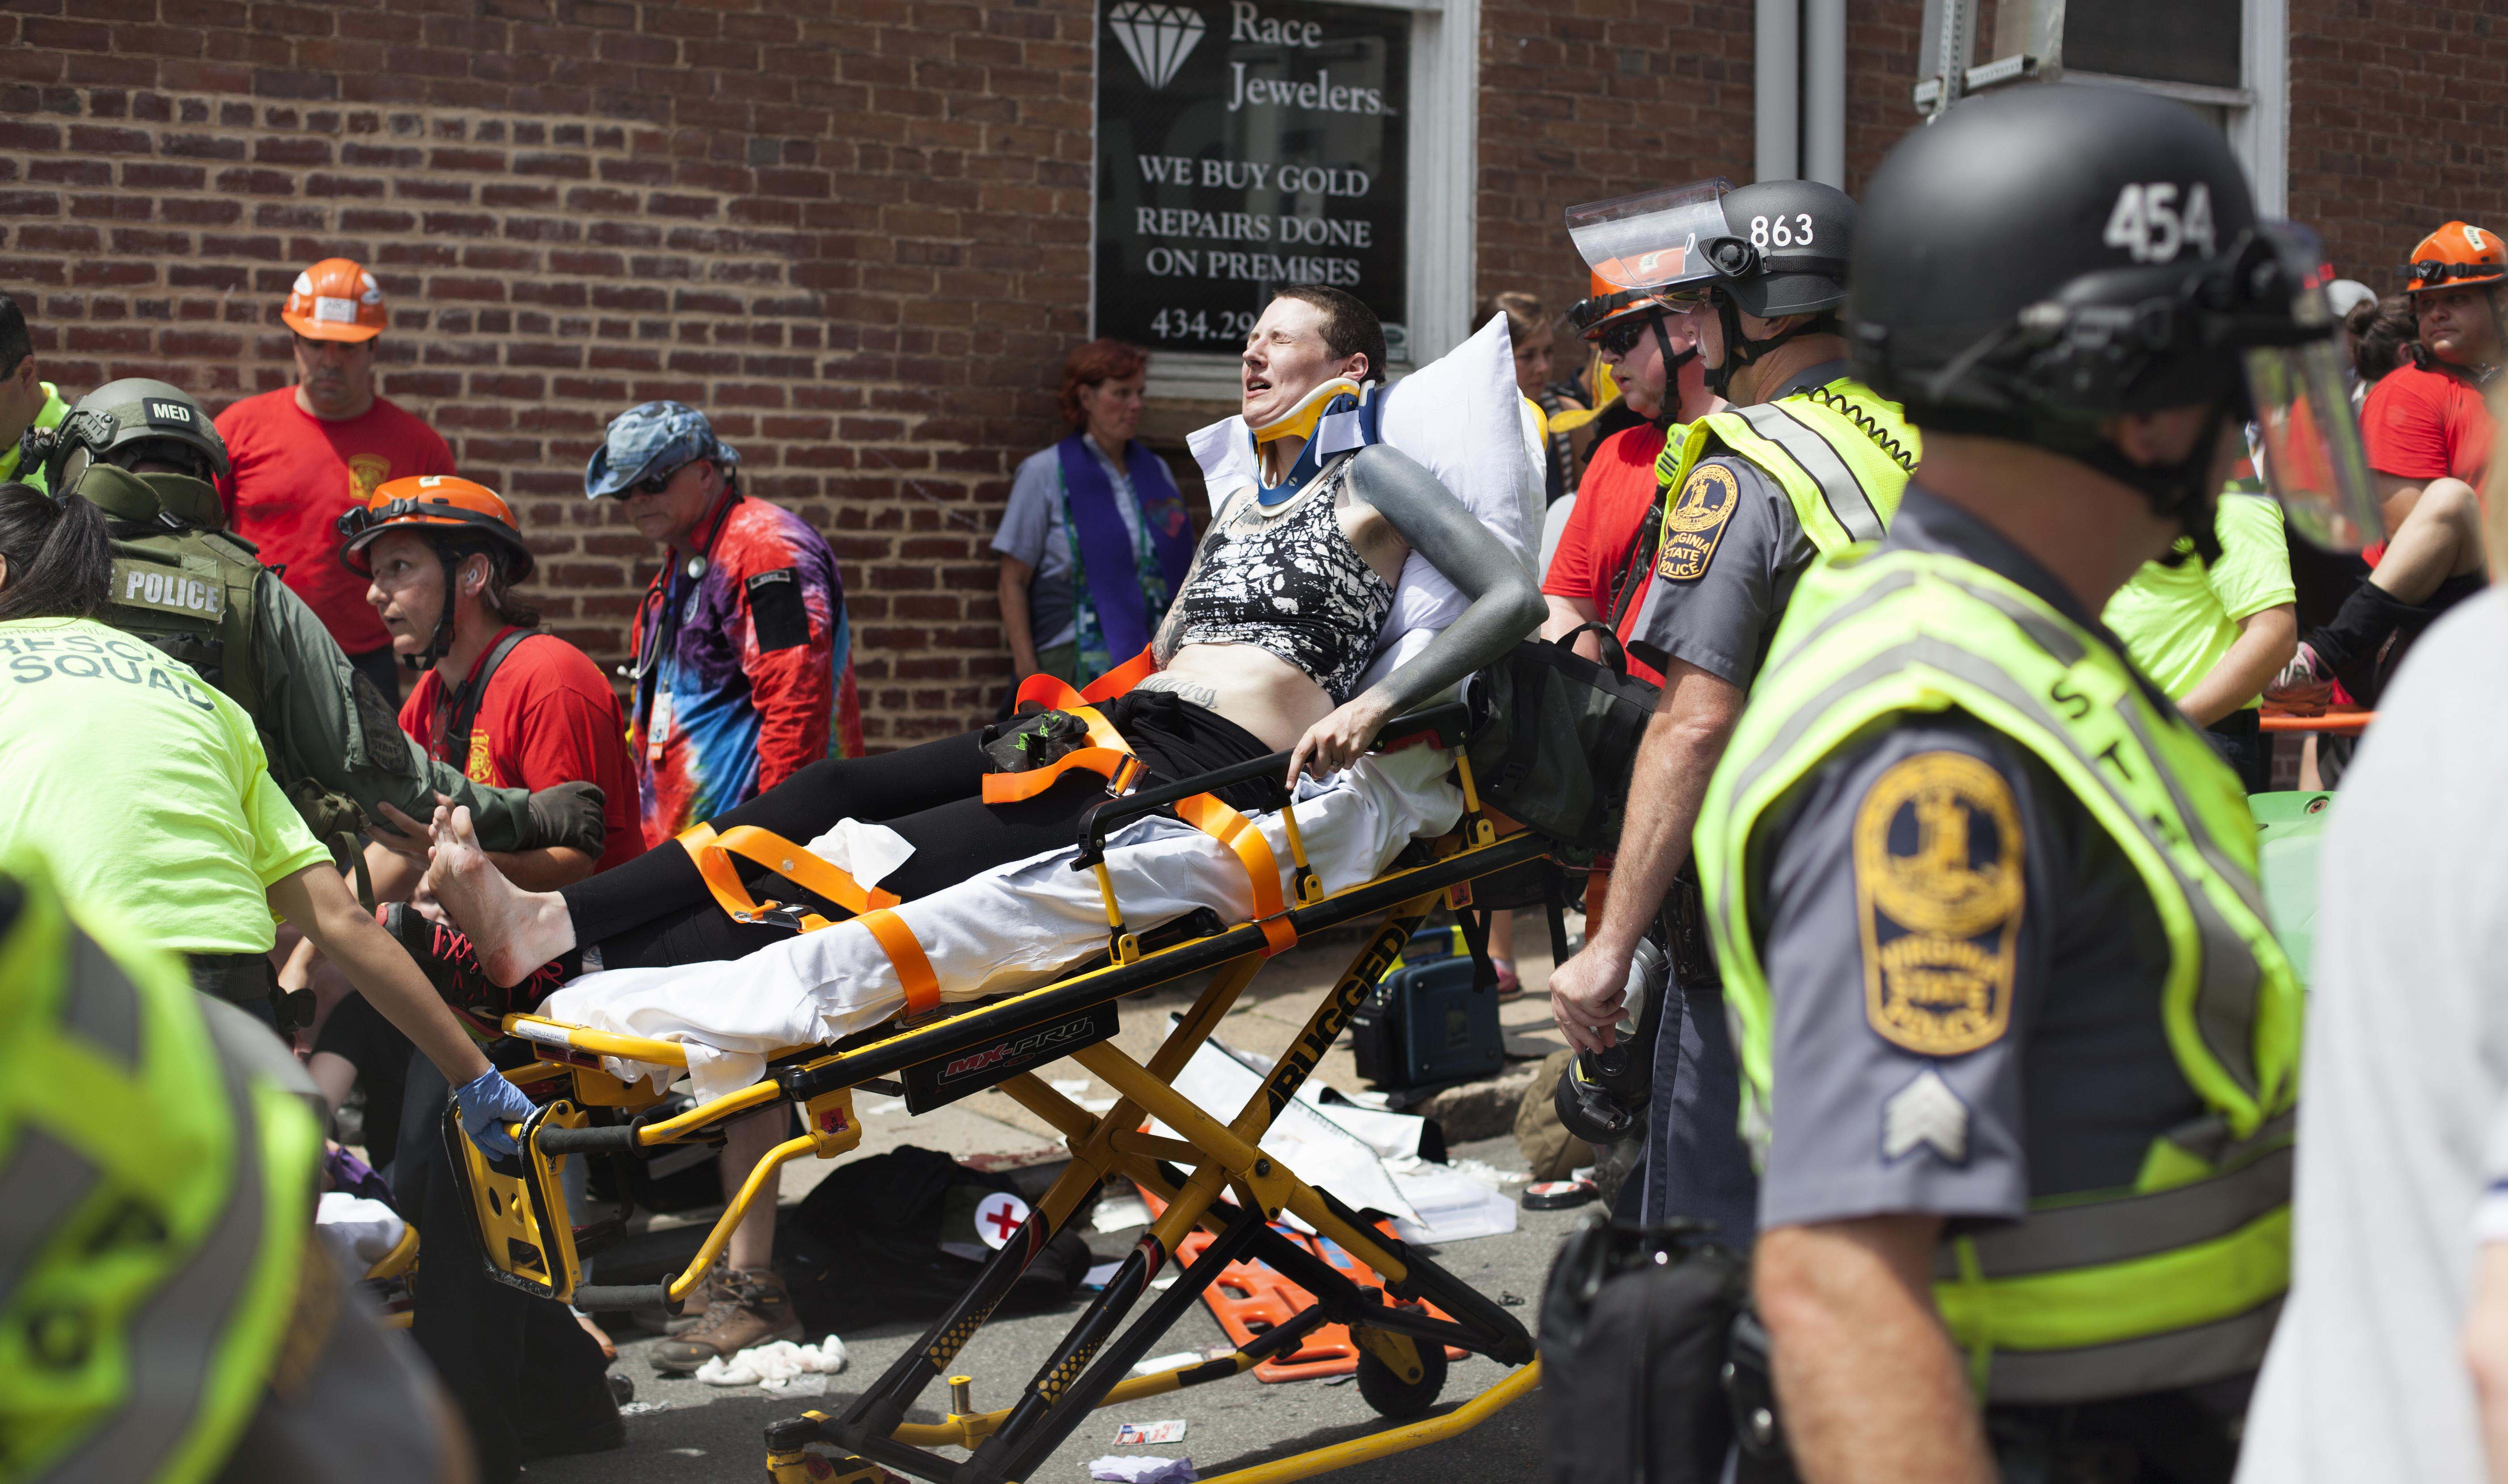 EMS and street medics treat counter protesters after a driver, later identified . by police as 20 year old James Alex Fields, Jr., plowed his car into the group. 32 year old Heather Heyer died, and 19 others were wounded in the attack. August 12, 2017, Charlottesville, VA. (Shay Horse/GroundTruth)